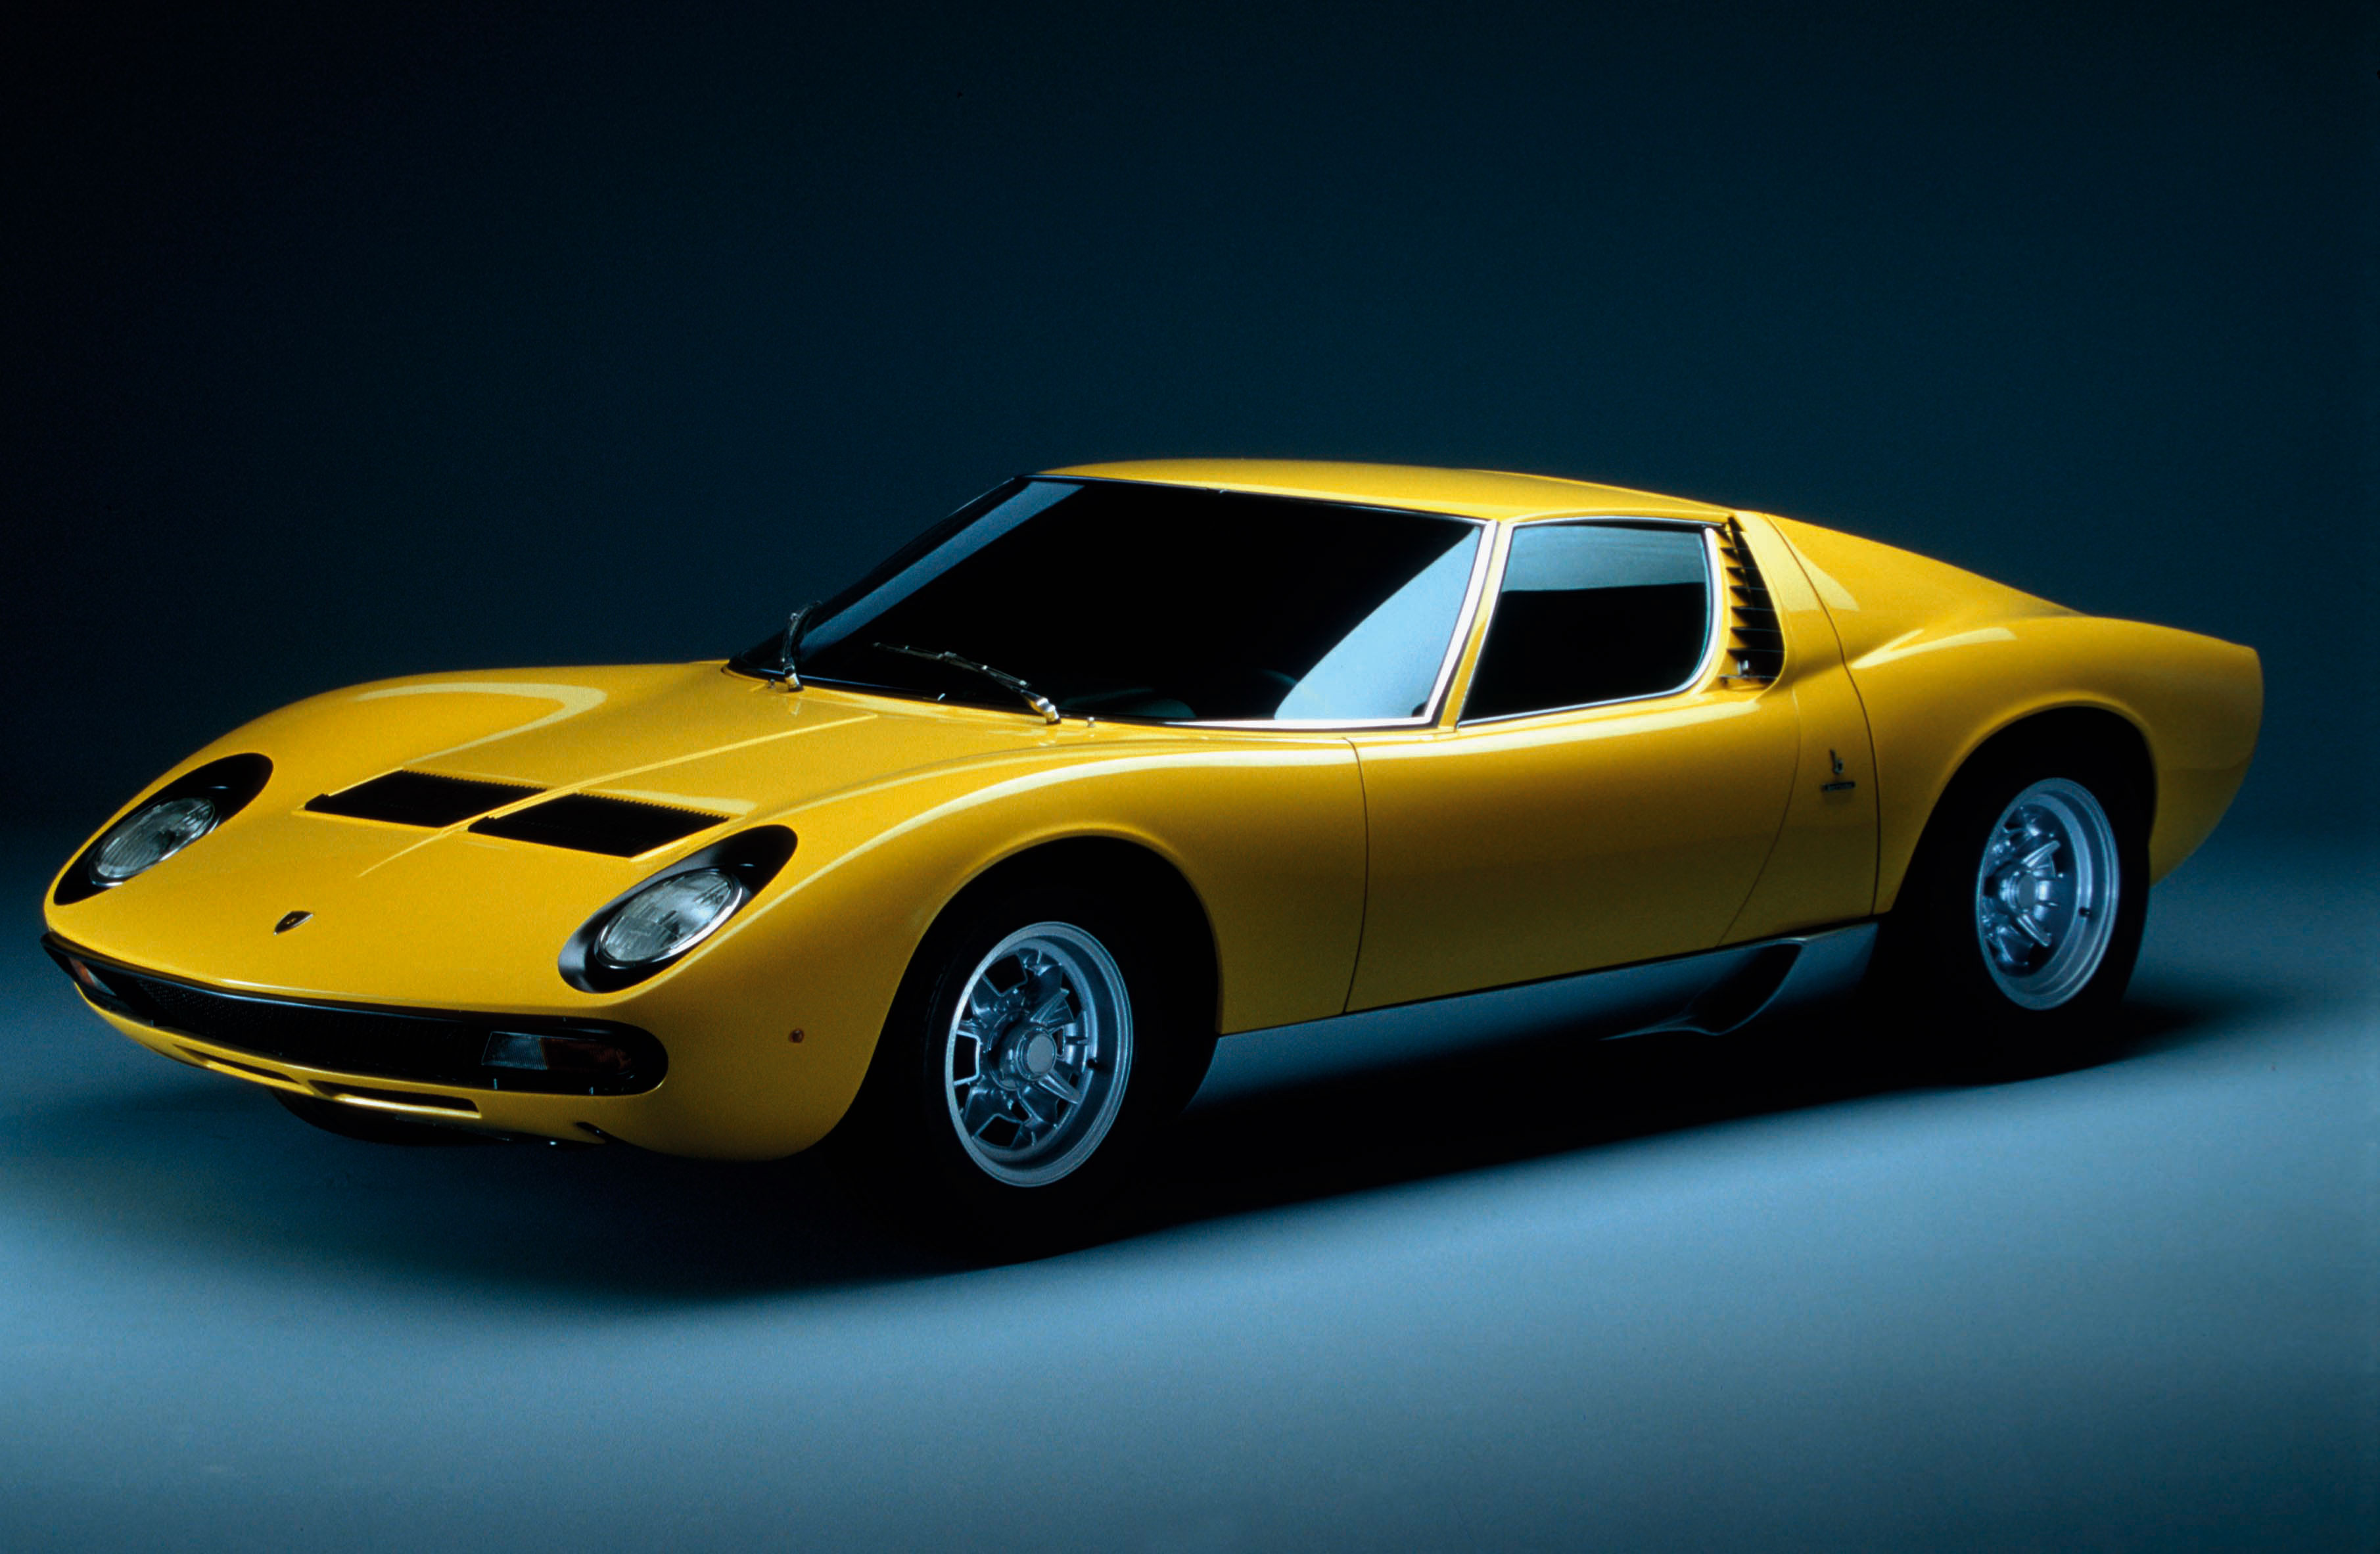 announces view for yac monuments road mode of lamborghini original celebrating winning projects zoom lina two poster lamborghinis legend gallery miura finalist image size